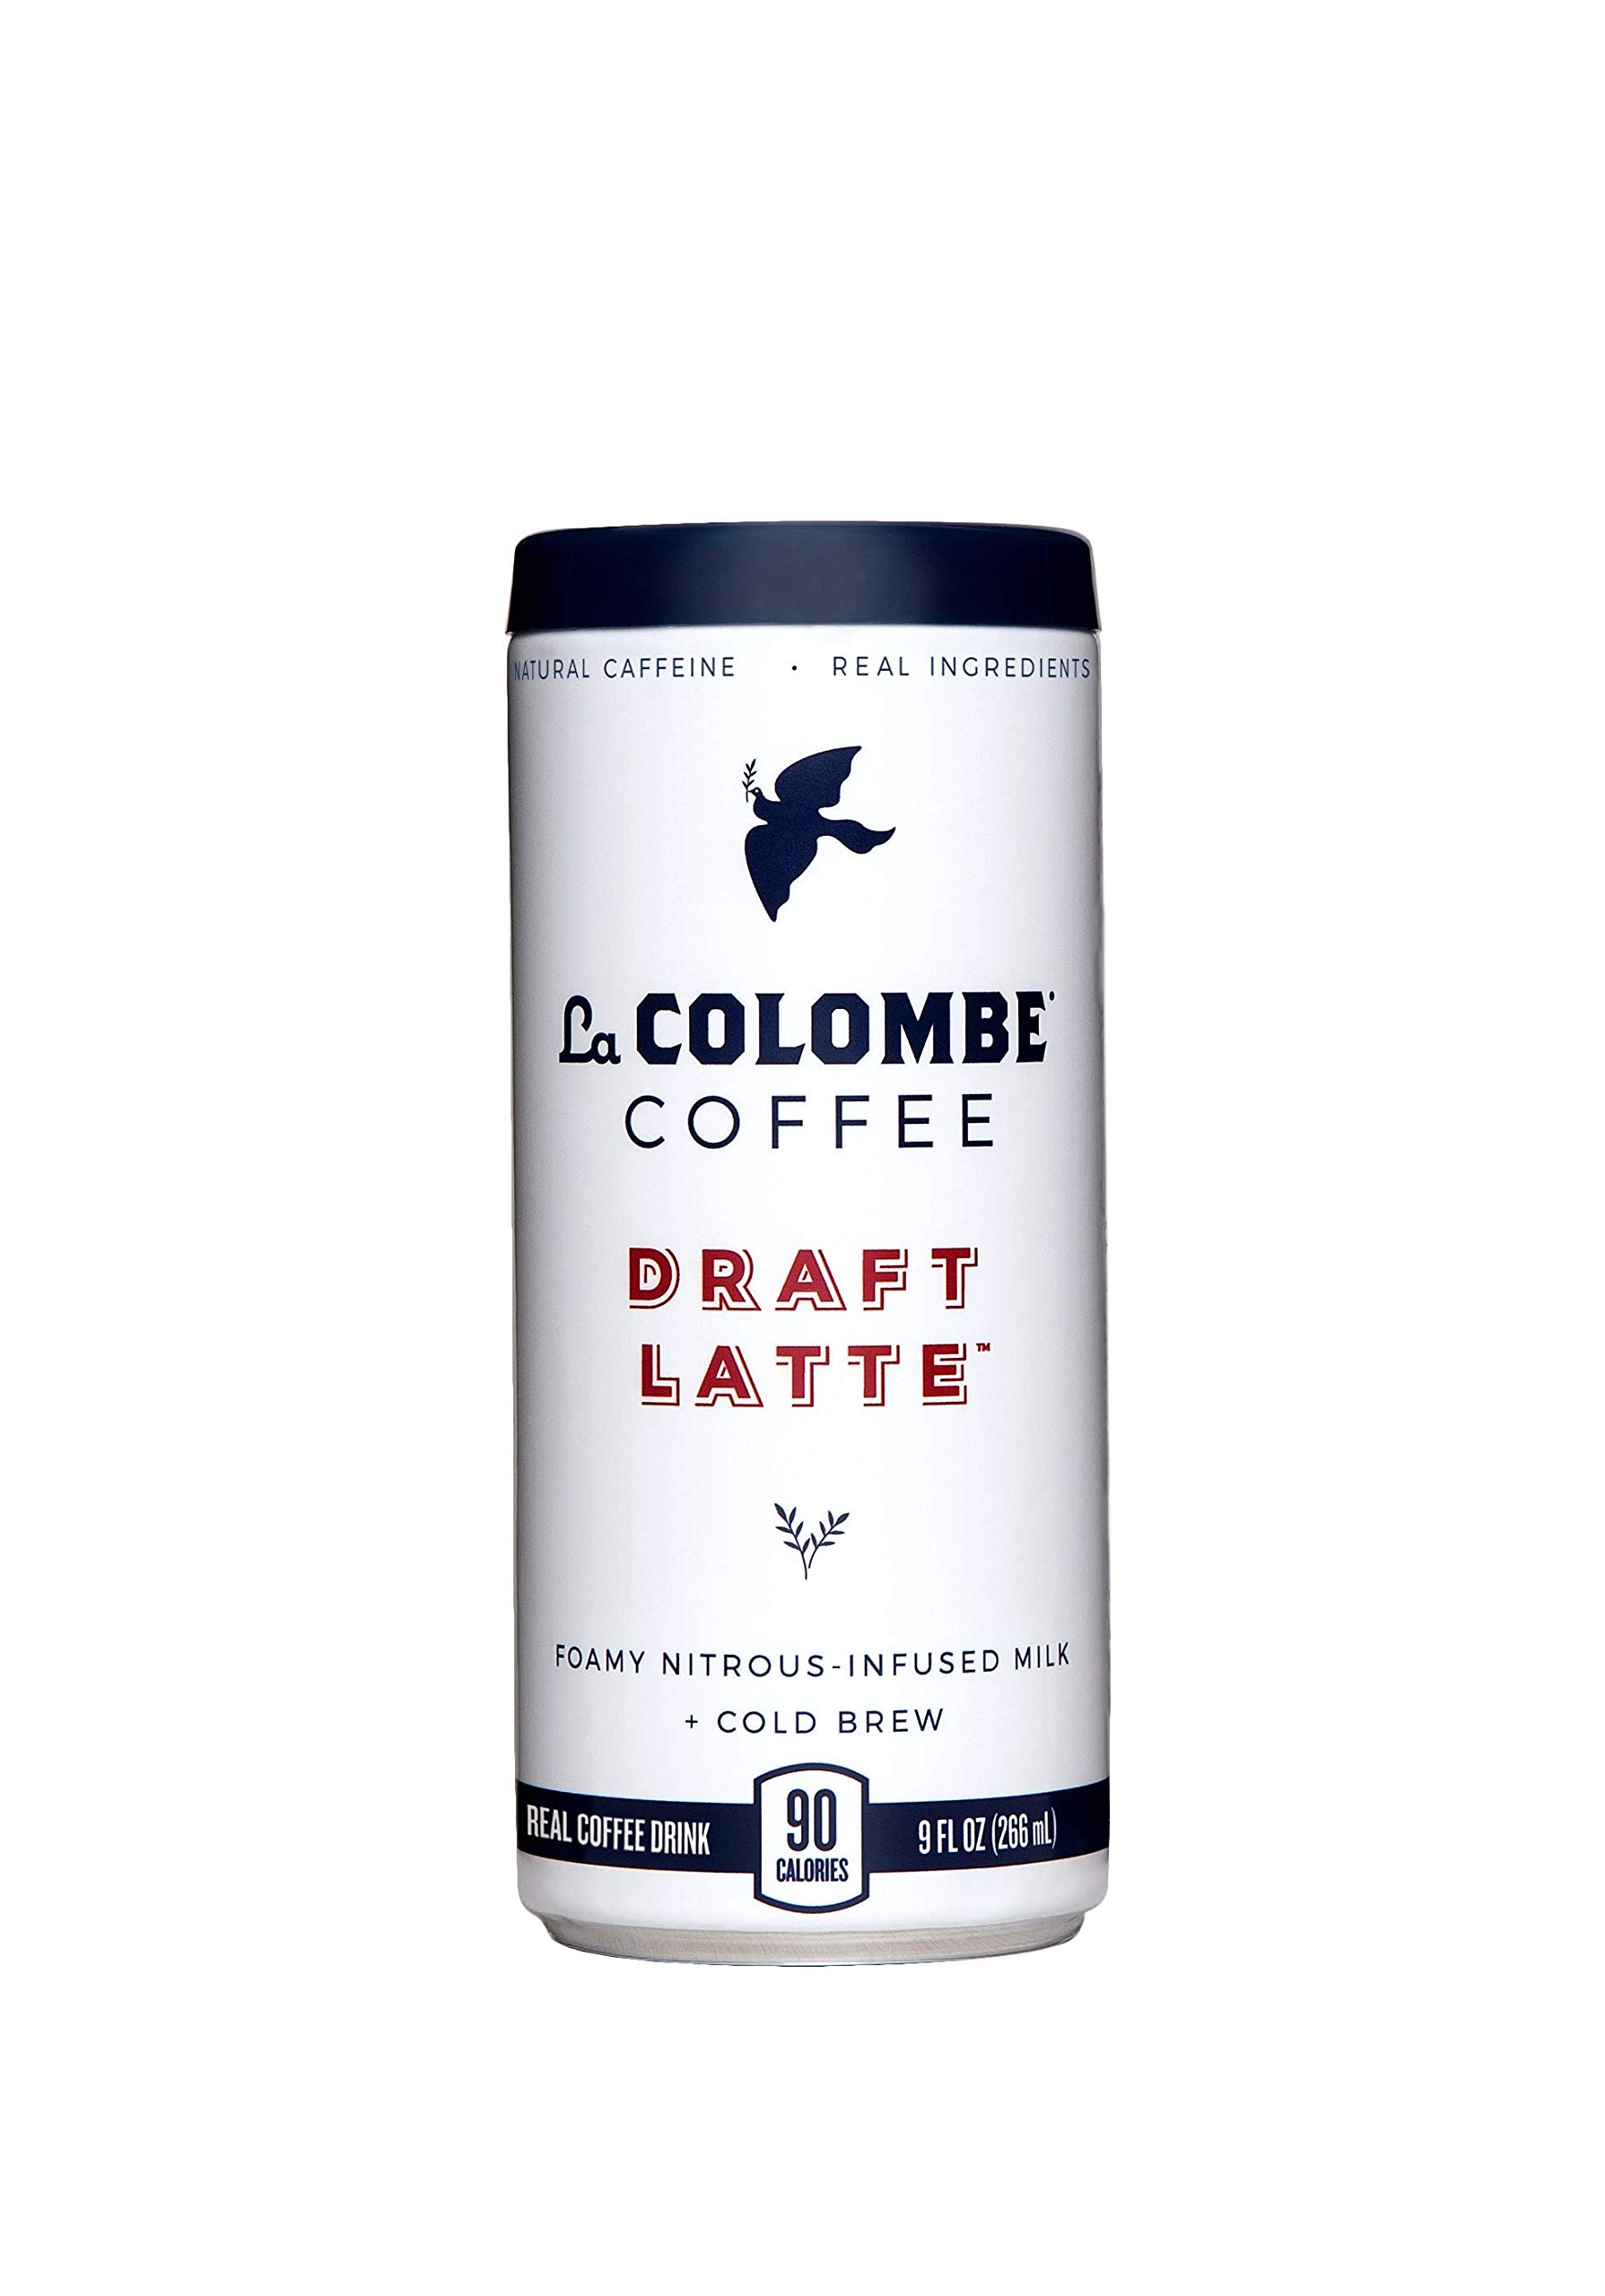 La Colombe Draft Latte - 9 Fluid Ounce, 16 Count - Cold-Pressed Espresso and Frothed Milk - Made With Real Ingredients - Grab And Go Coffee by La Colombe